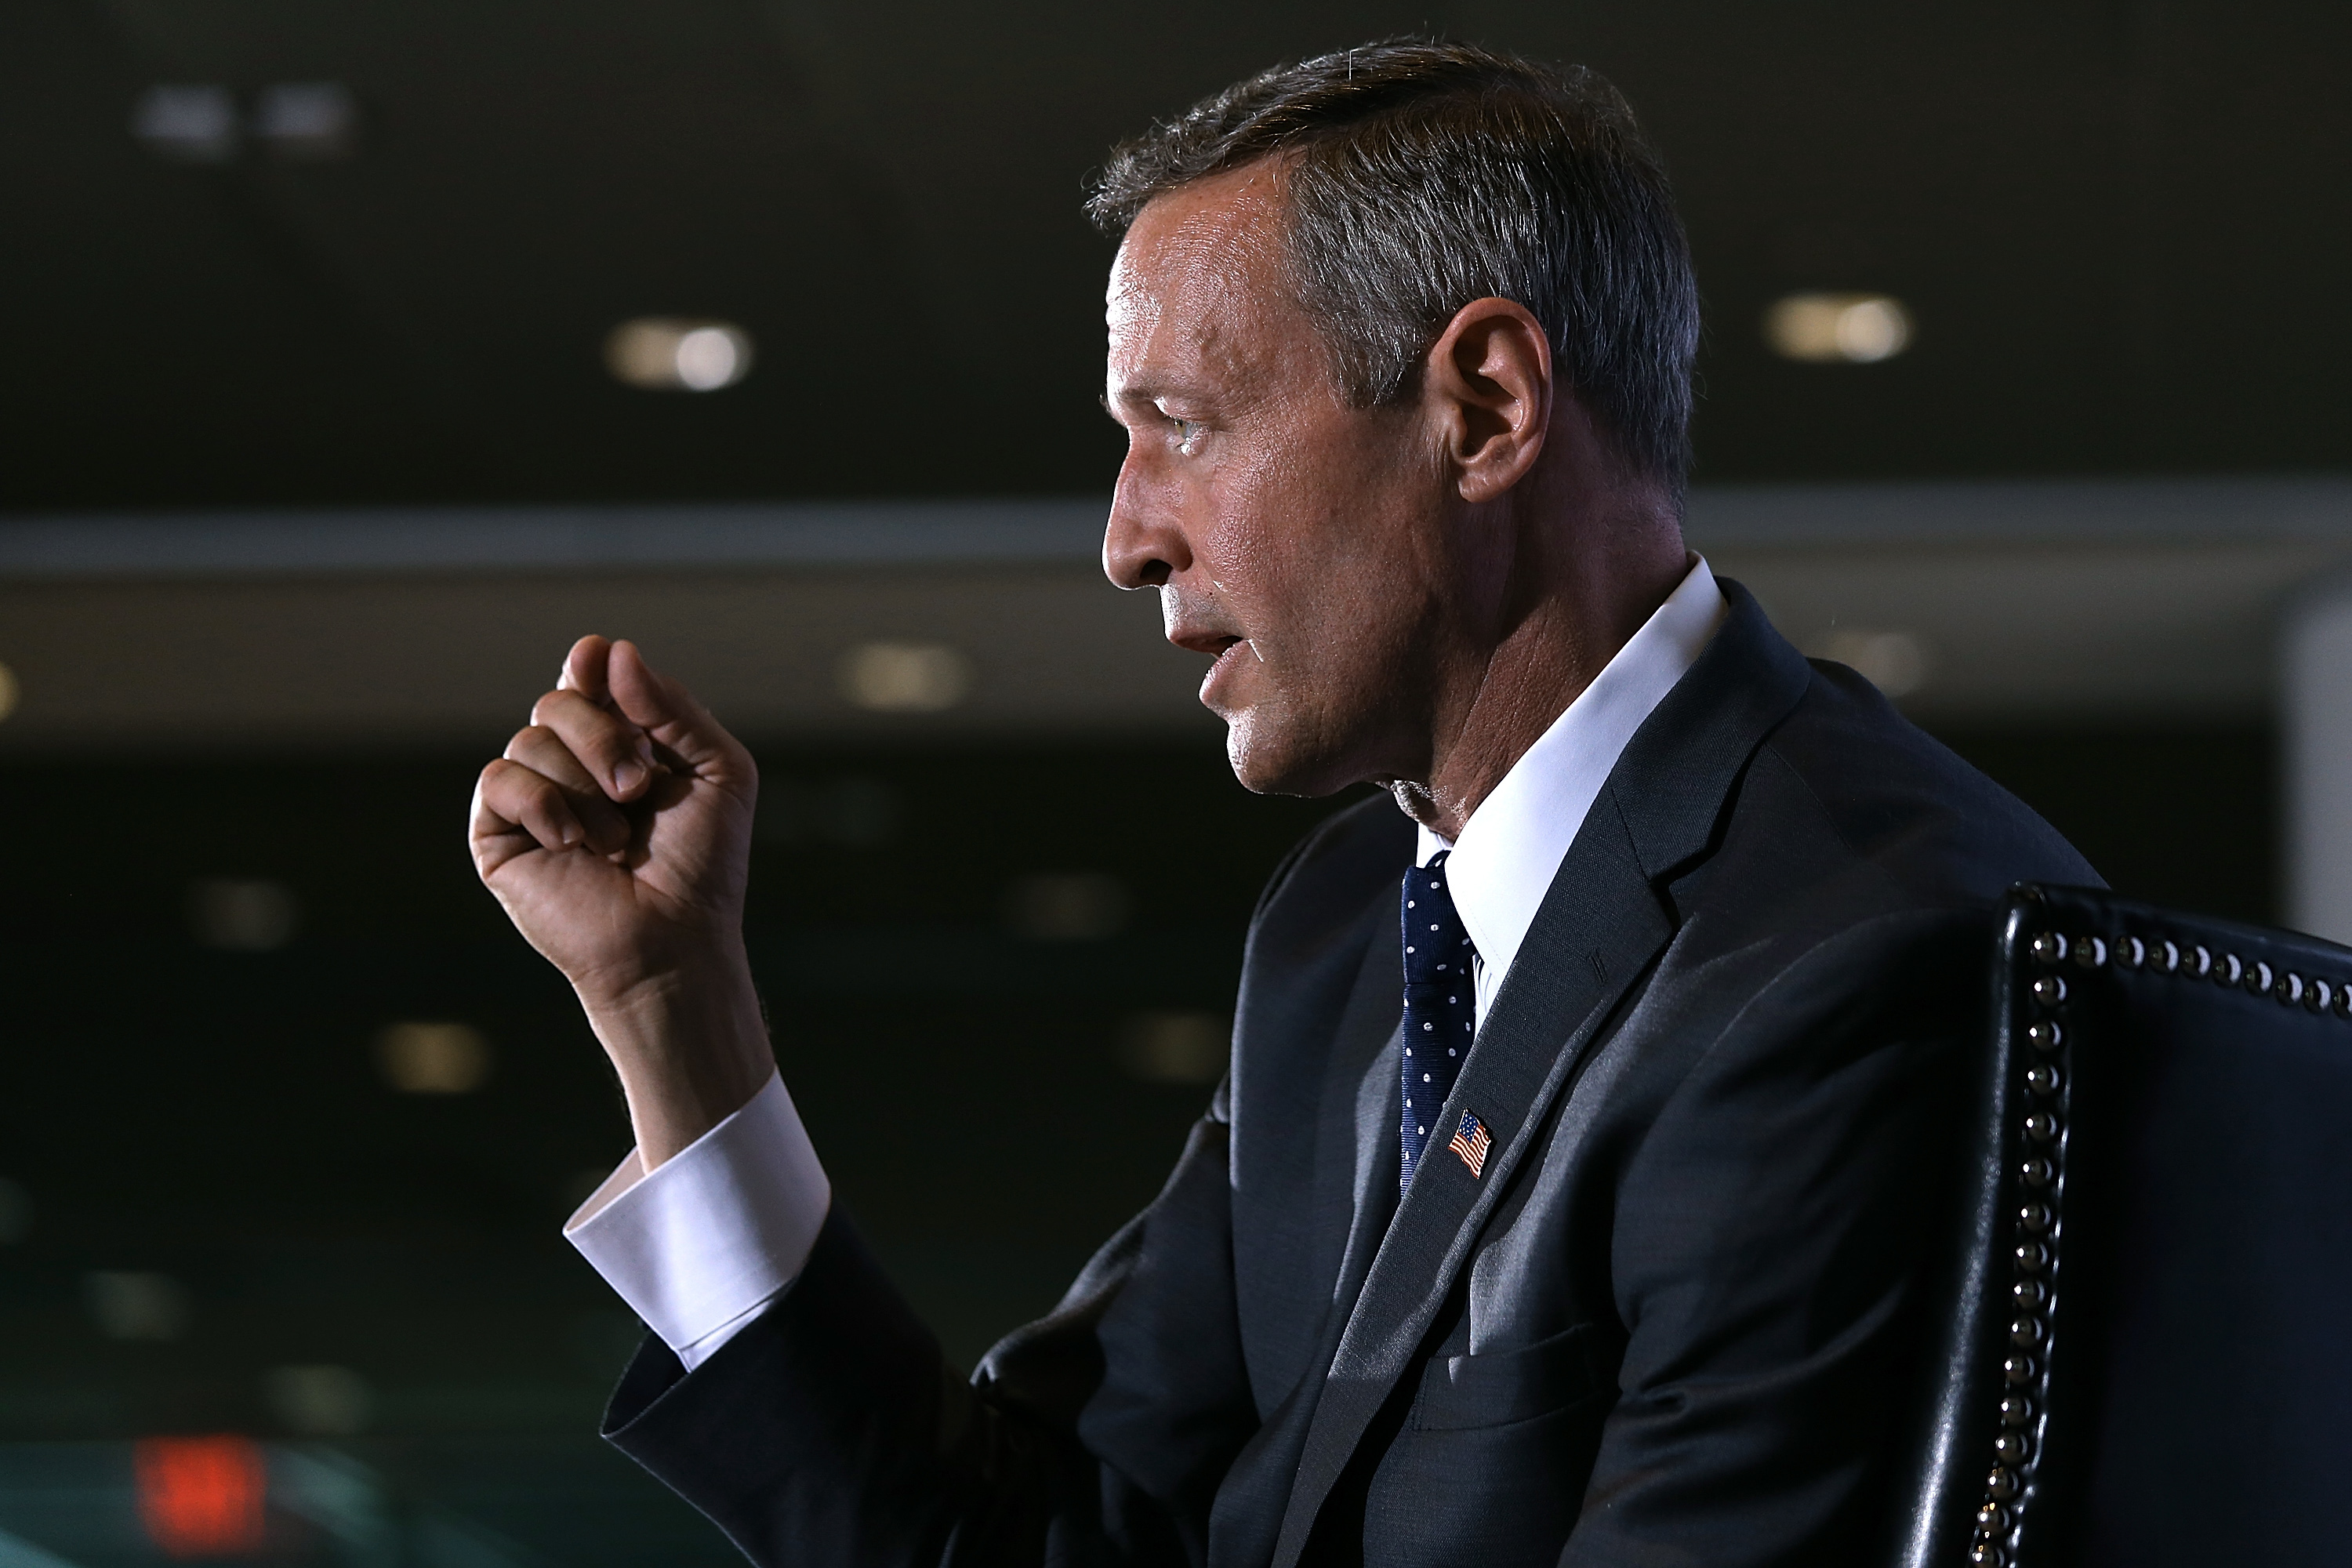 U.S. Democratic presidential candidate and former Maryland Gov. Martin O'Malley speaks at the U.S. Hispanic Chamber of Commerce in Washington, DC. on June 3, 2015.